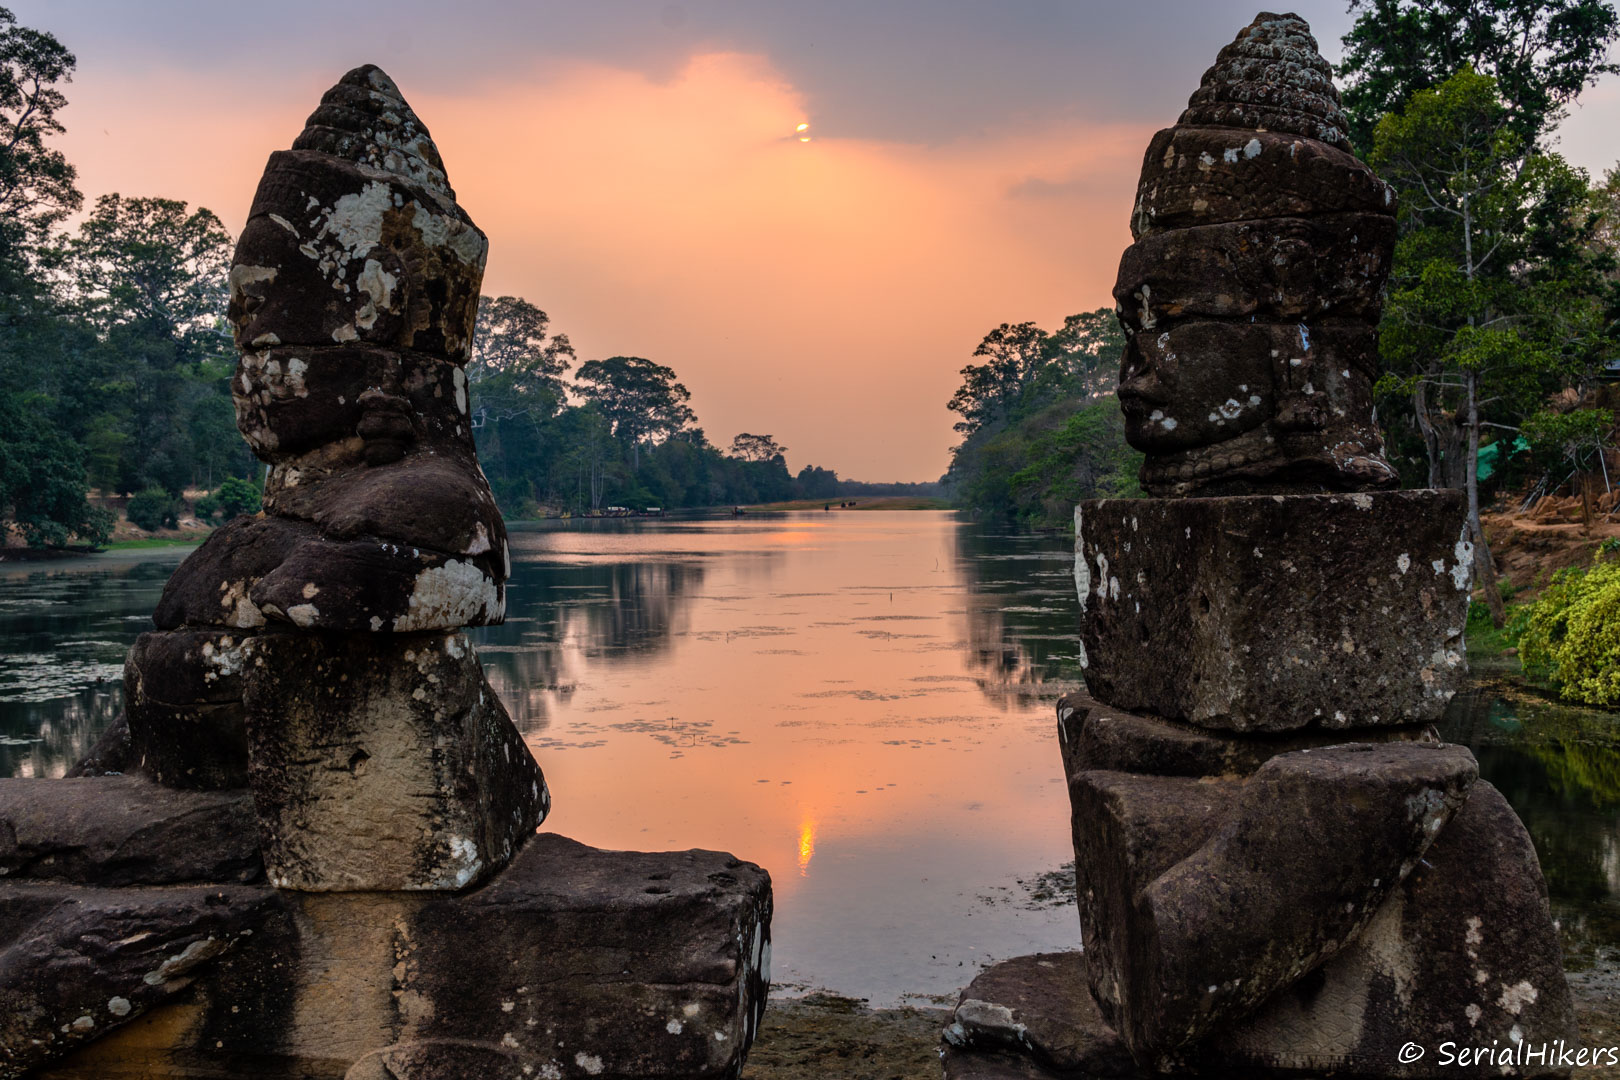 backpacking Jul&Gaux SerialHikers stop autostop world tour hitchhiking aventure adventure alternative travel voyage volontariat volonteering siem reap angkor temple bicycle cambodge cambodia